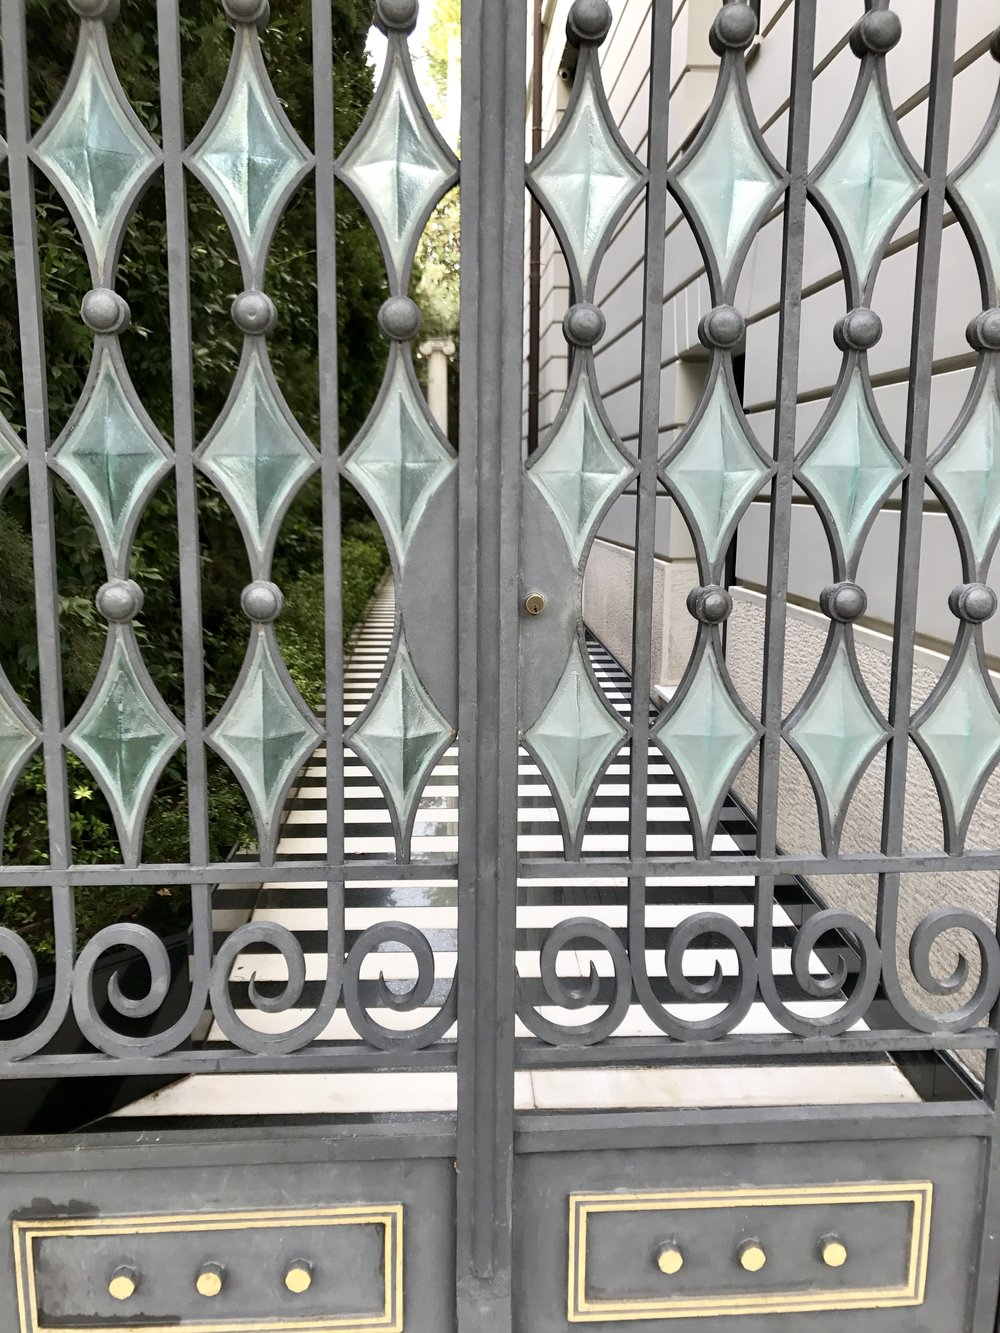 Cast glass set in a decorative and functional gate guarding a black and white striped marble side walk.